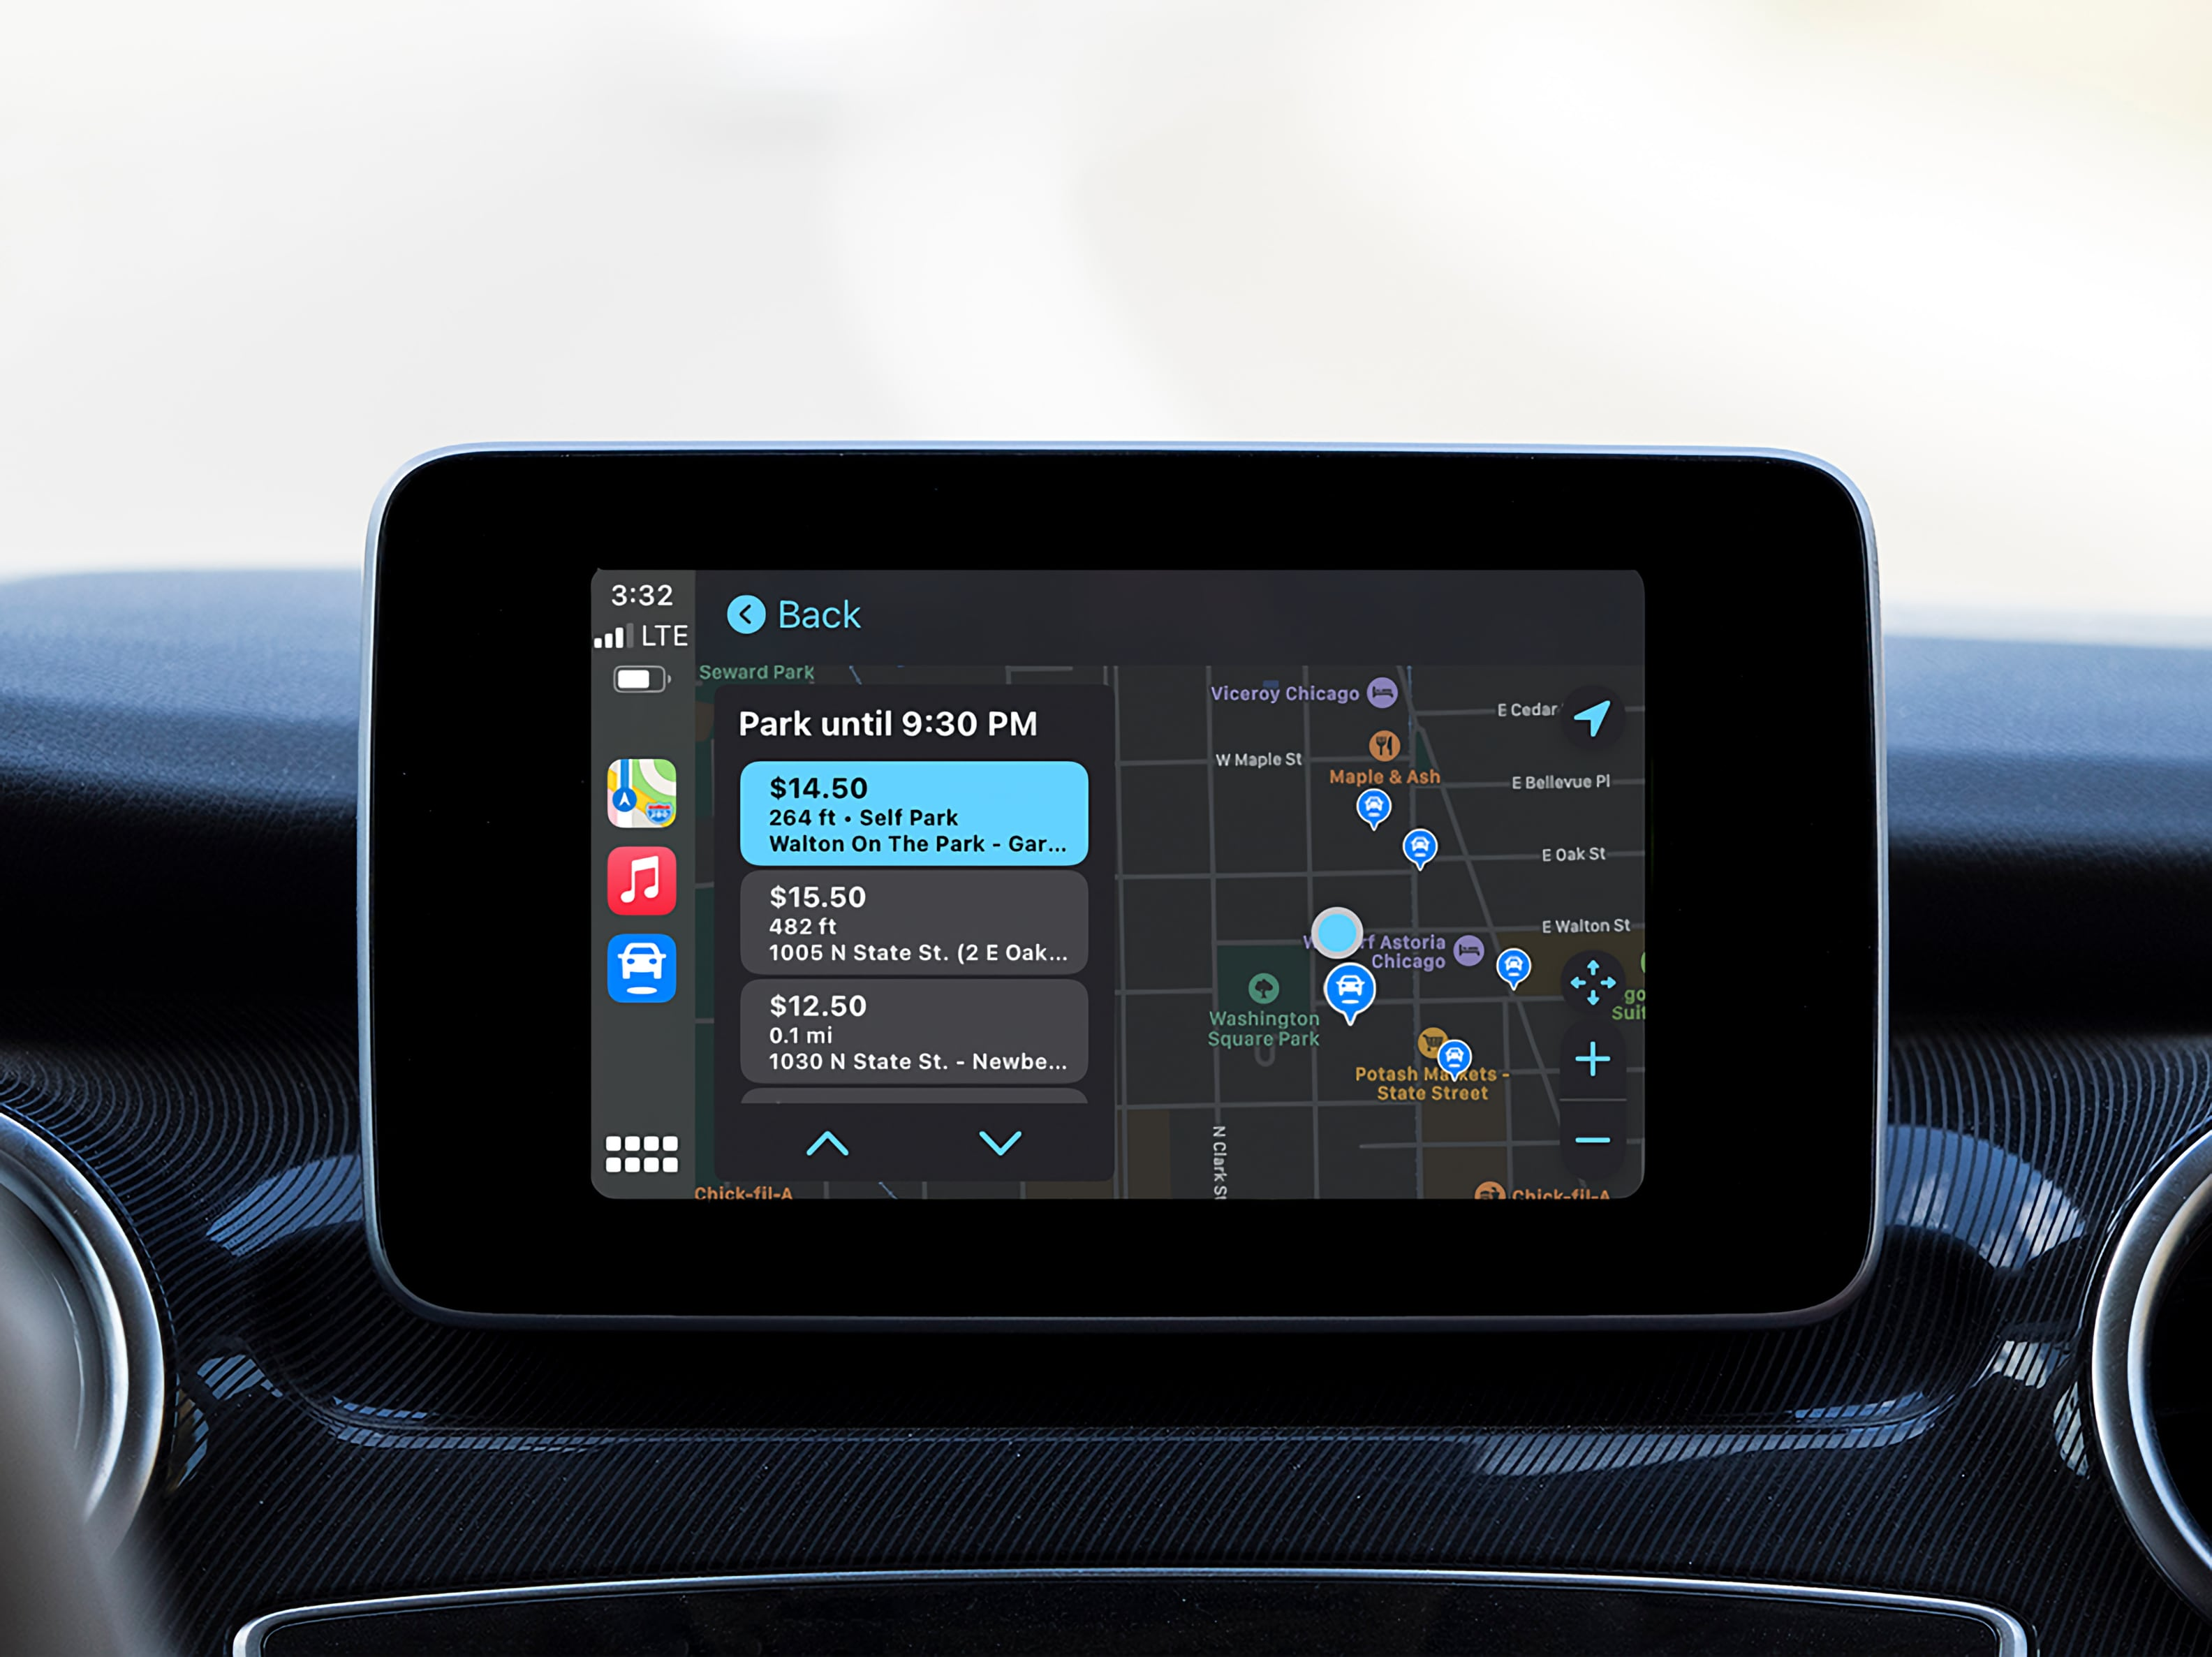 photo of SpotHero digital parking service announces integration with Apple CarPlay image